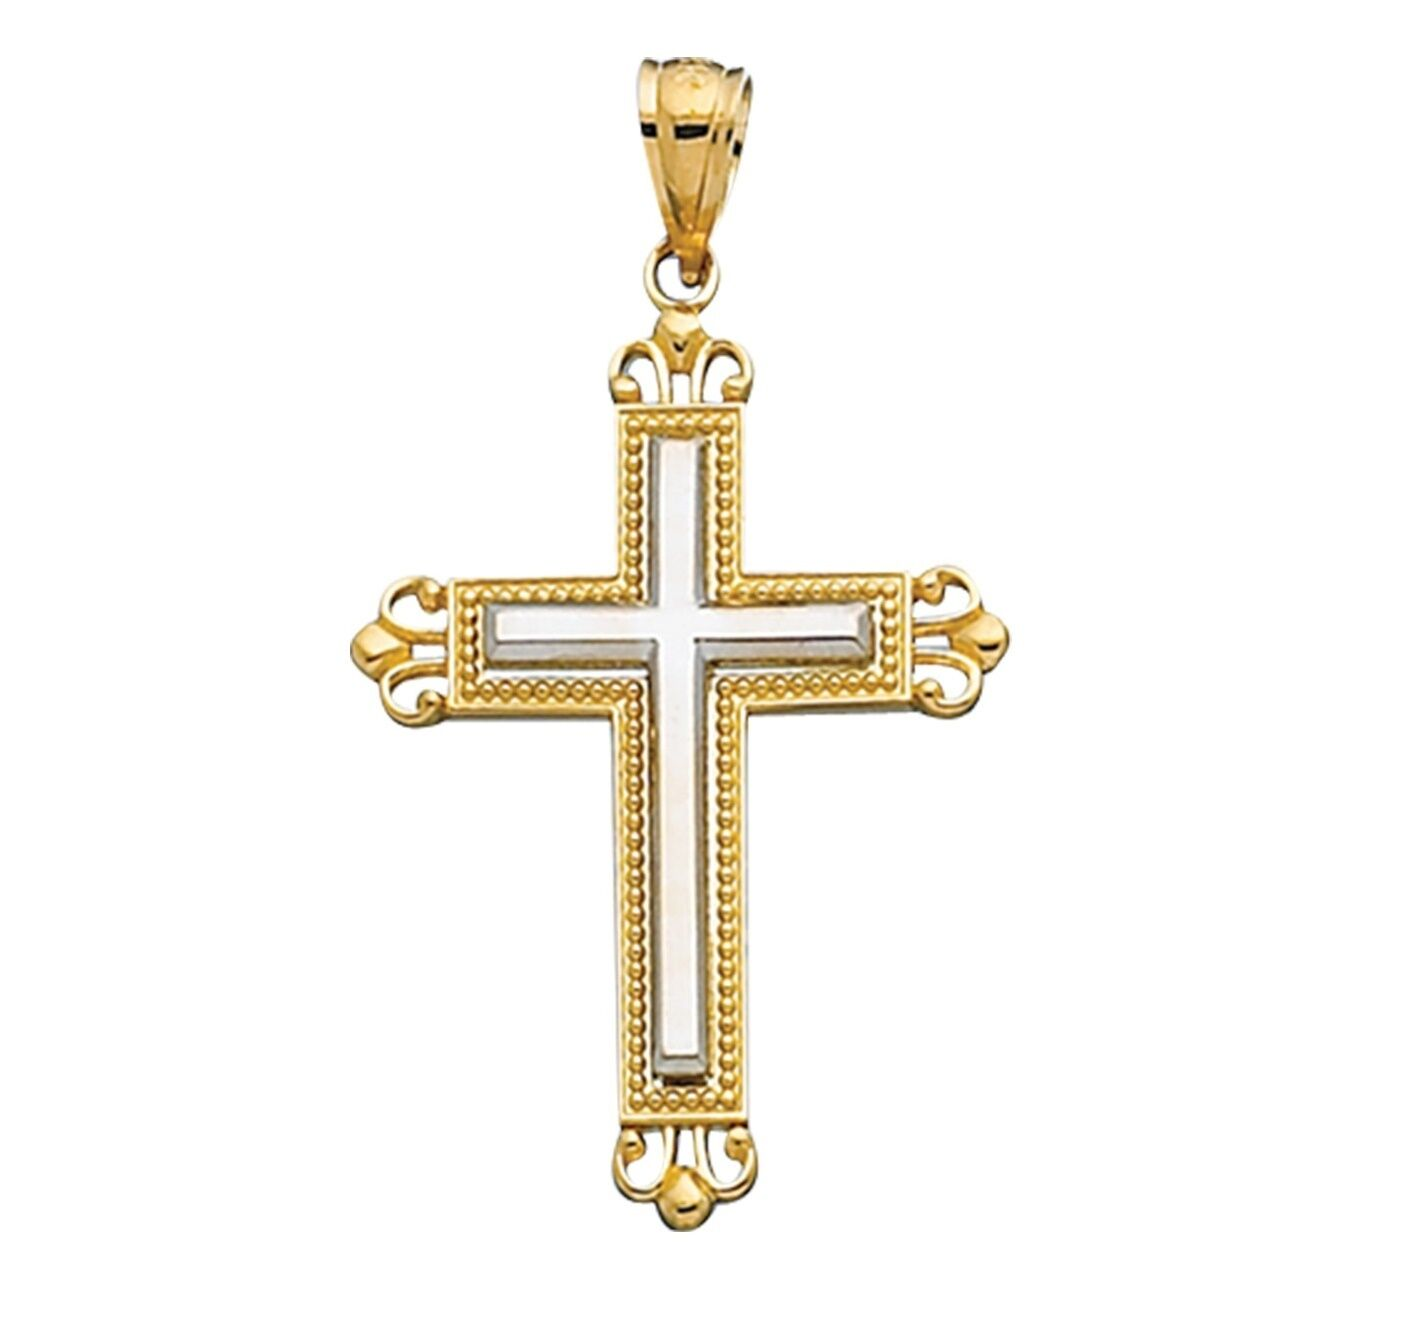 14K Yellow White gold Square Edge Fancy Tip Ball Trim Cross Pendant